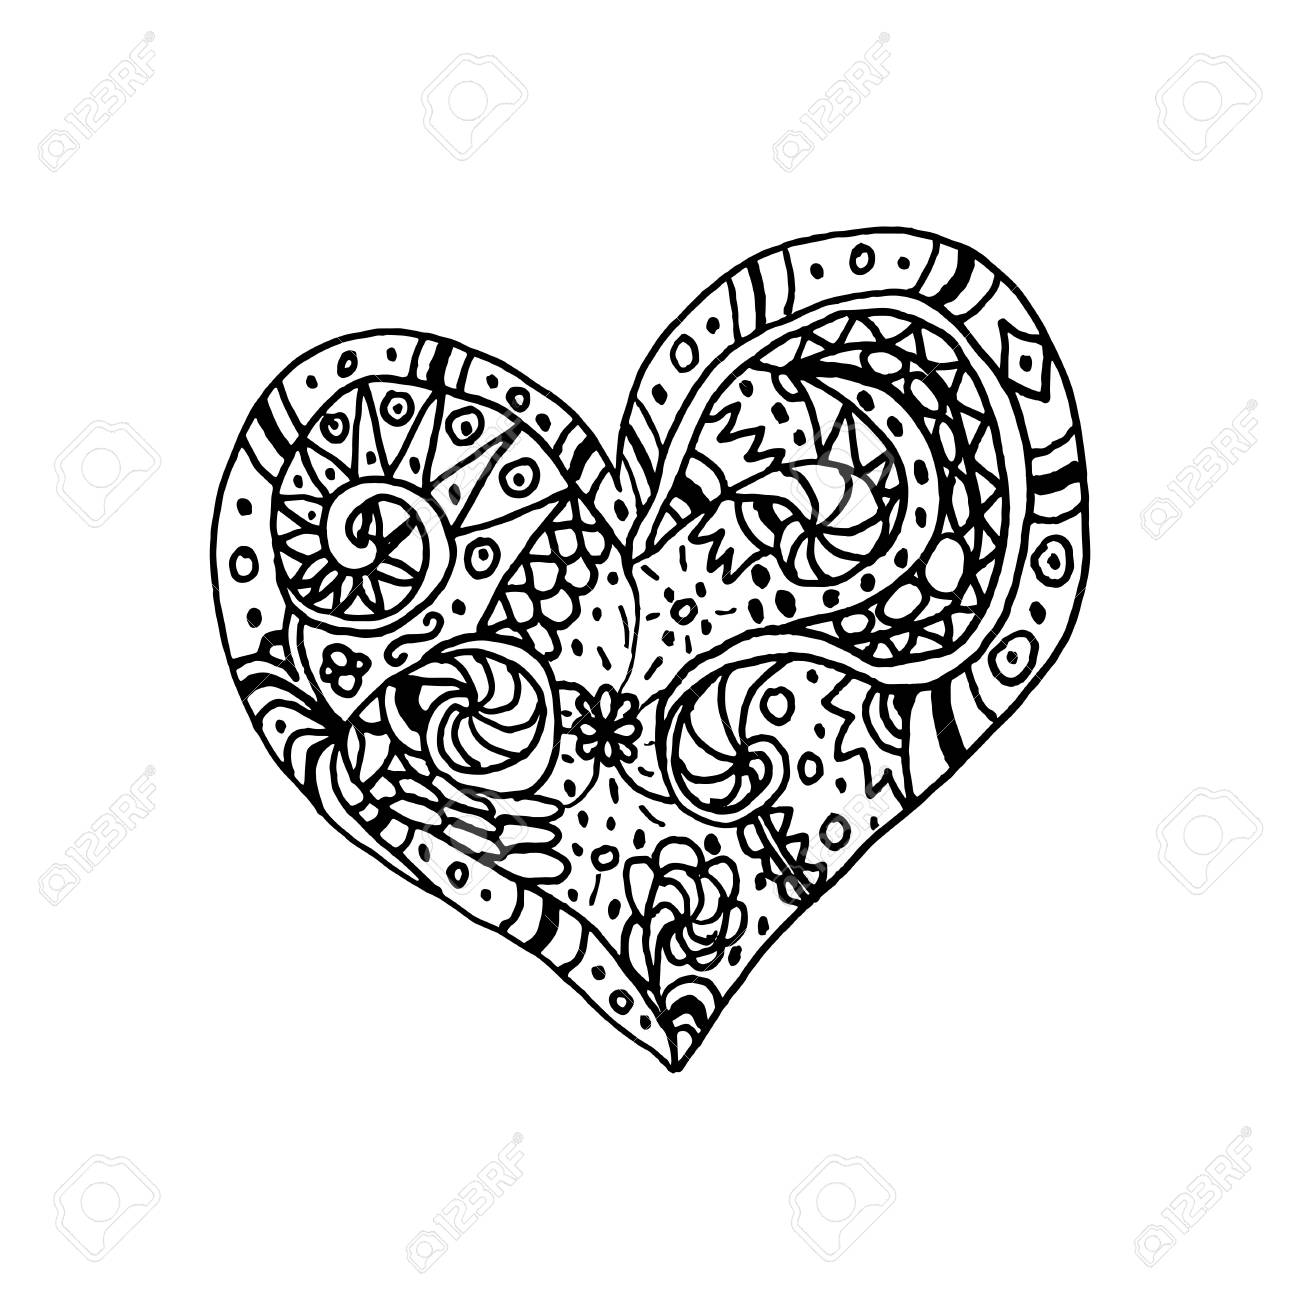 Vector illustration of doodle hand drawn heart. Coloring page..